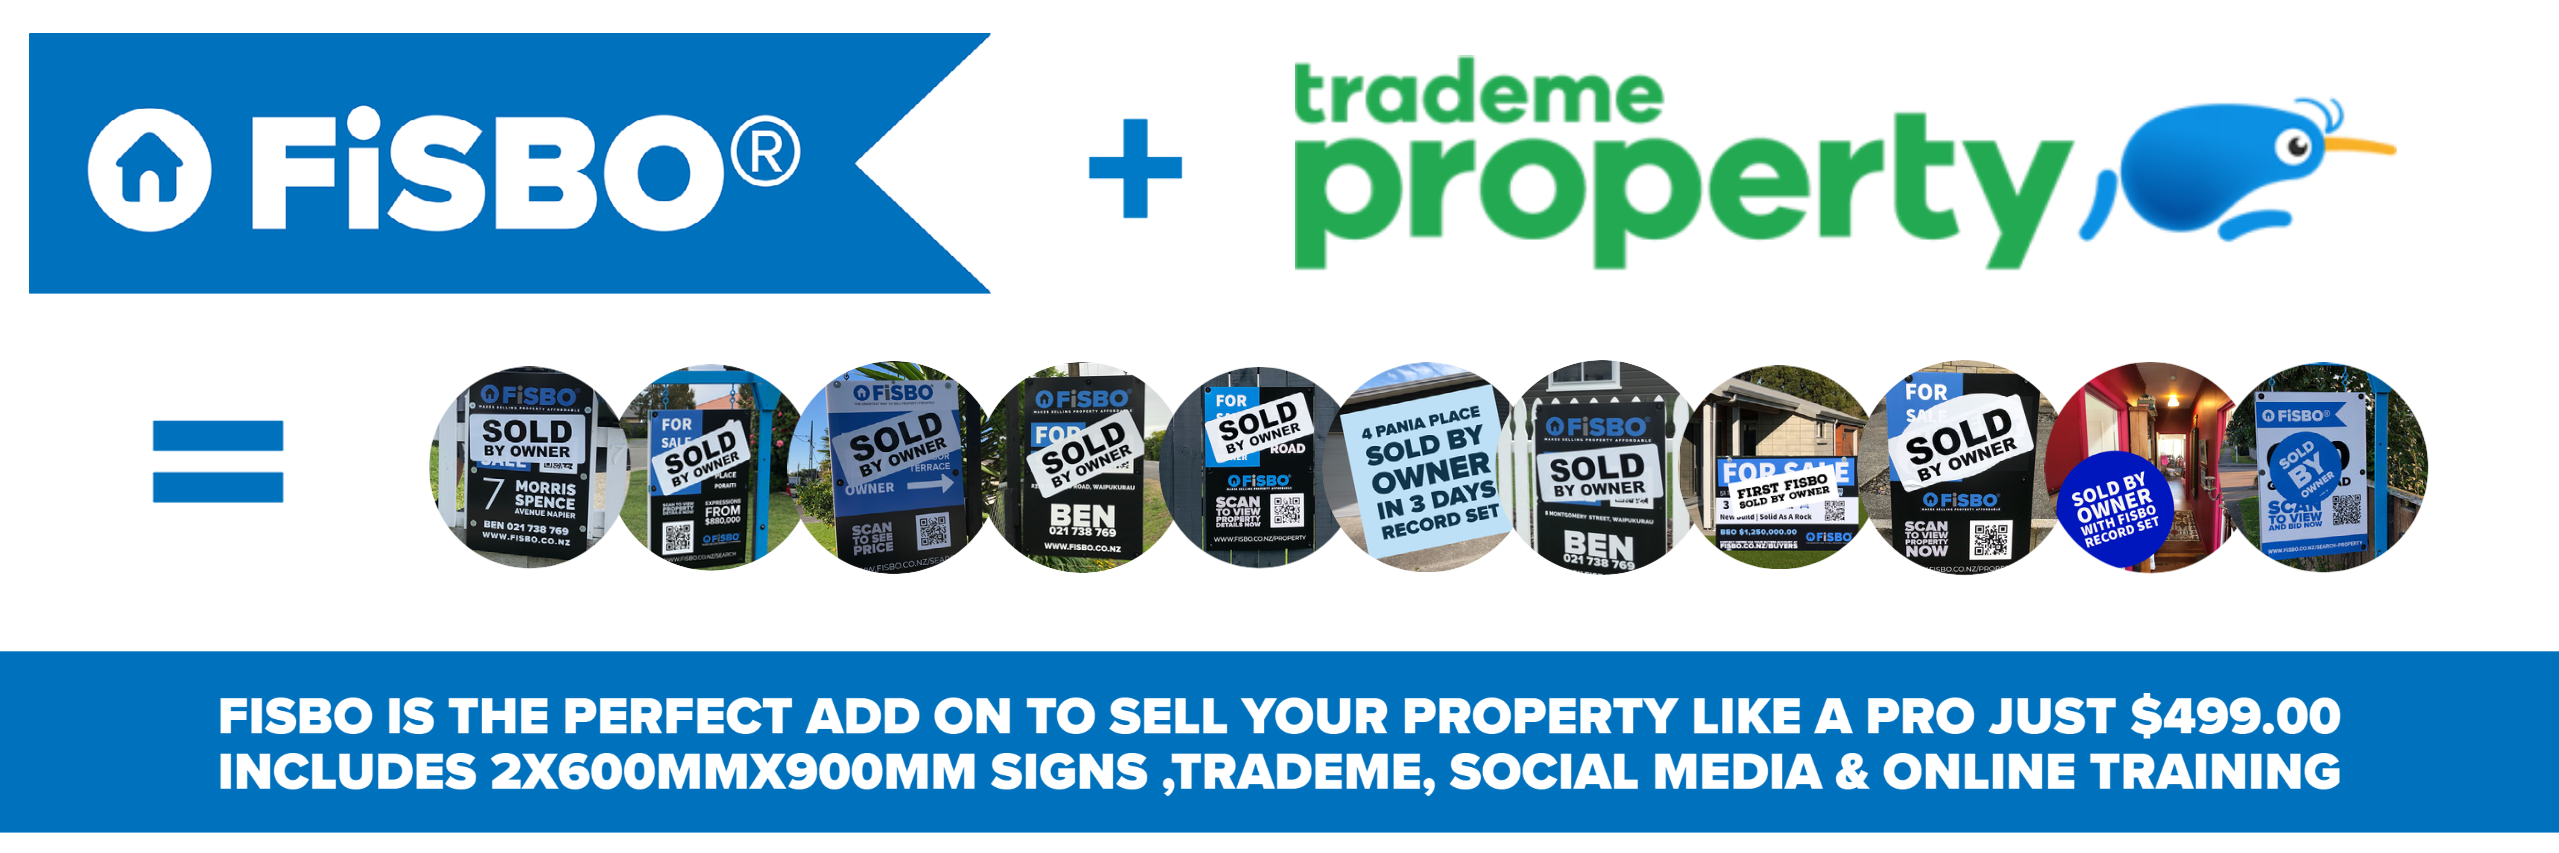 Fisbo and trademe banner